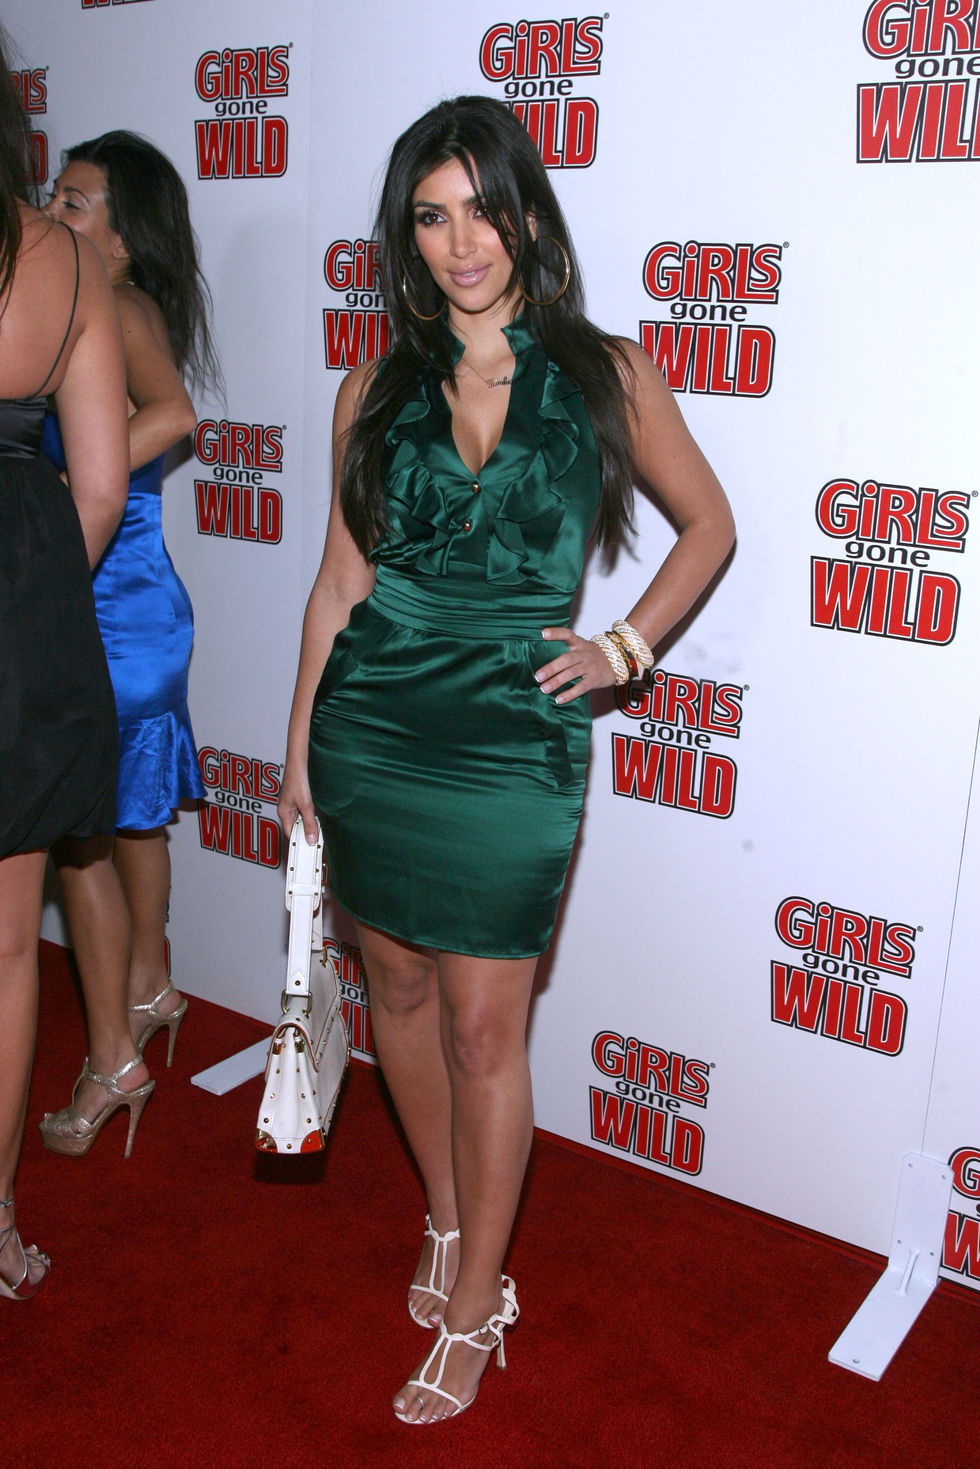 kim-kardashian-girls-gone-wild-magazine-launch-party-in-west-hollywood-01